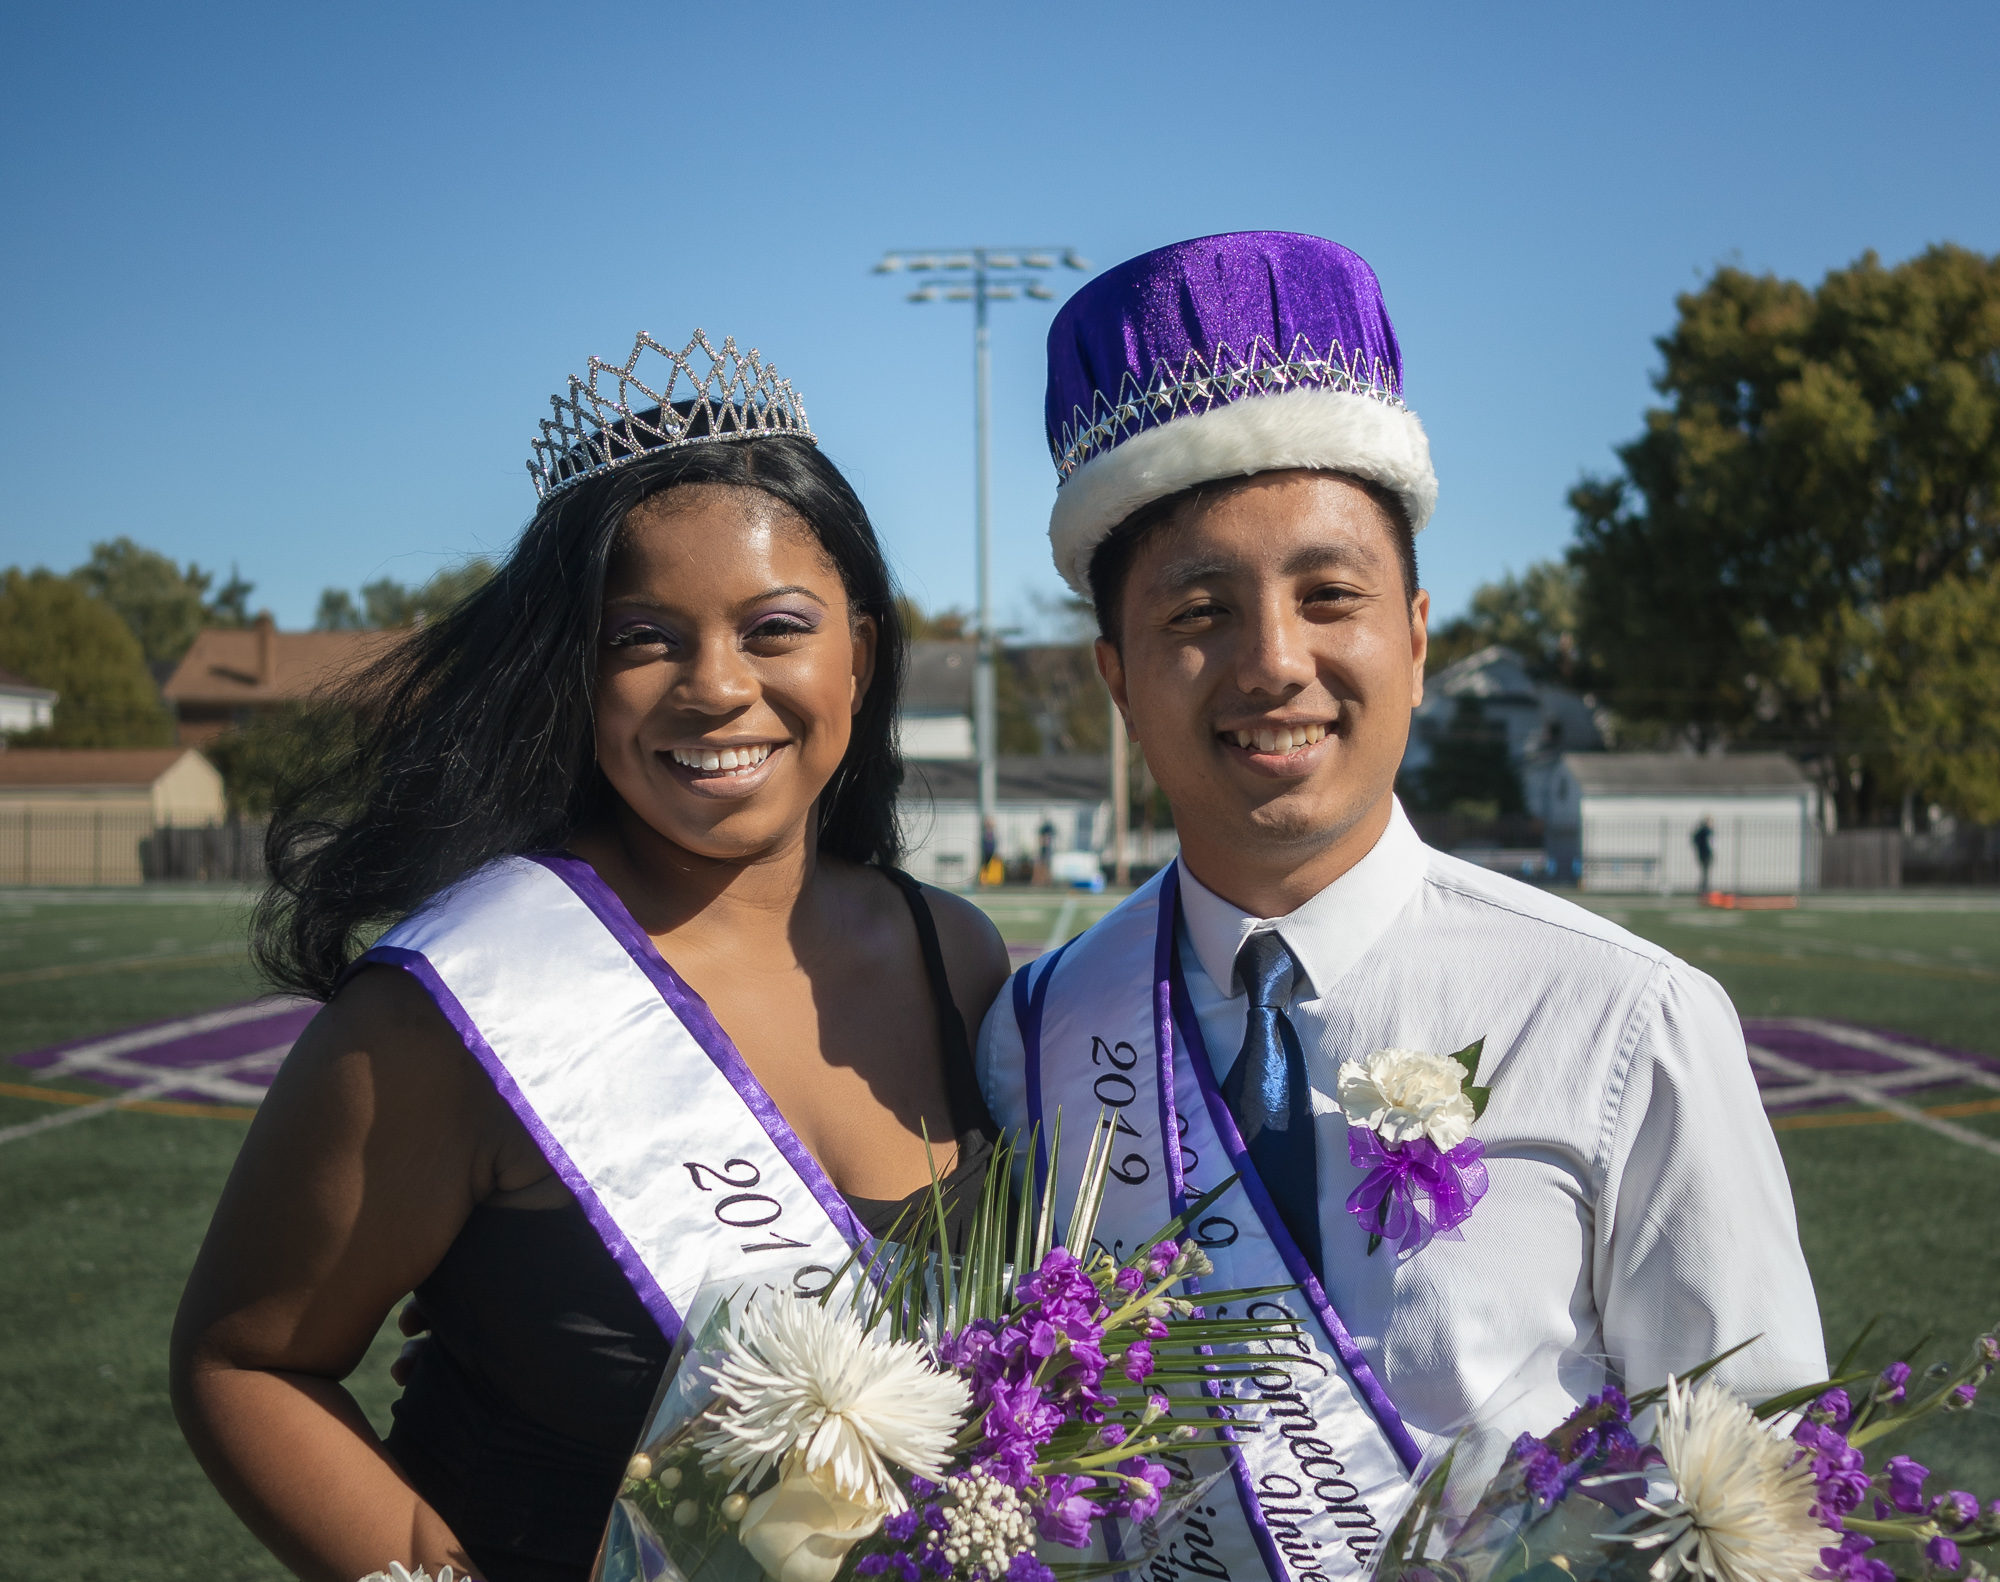 Homecoming royalty on their campus impact and crowning